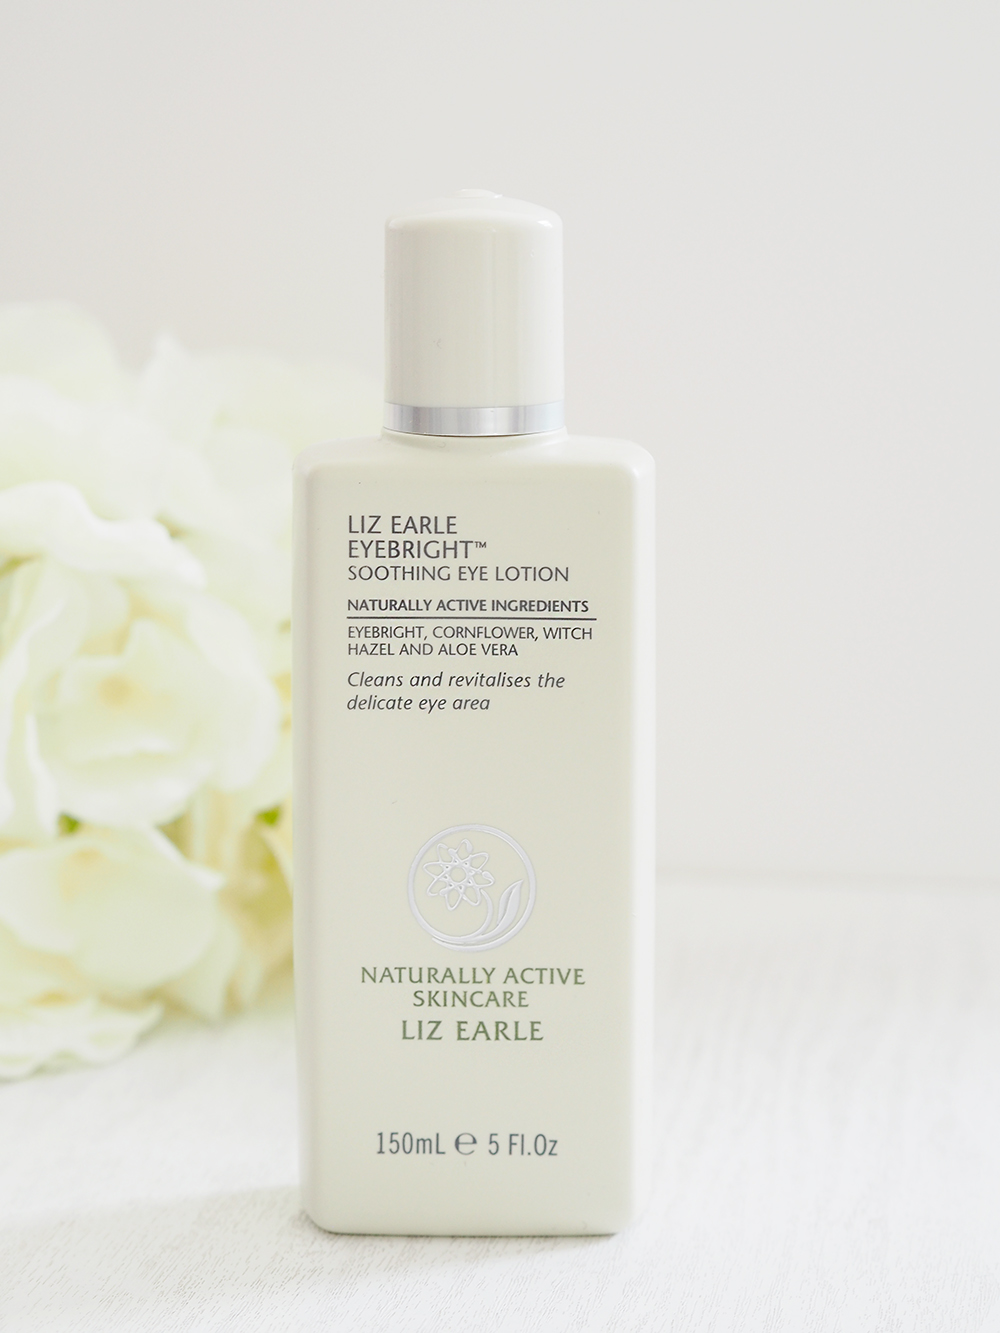 liz earle eye bright lotion